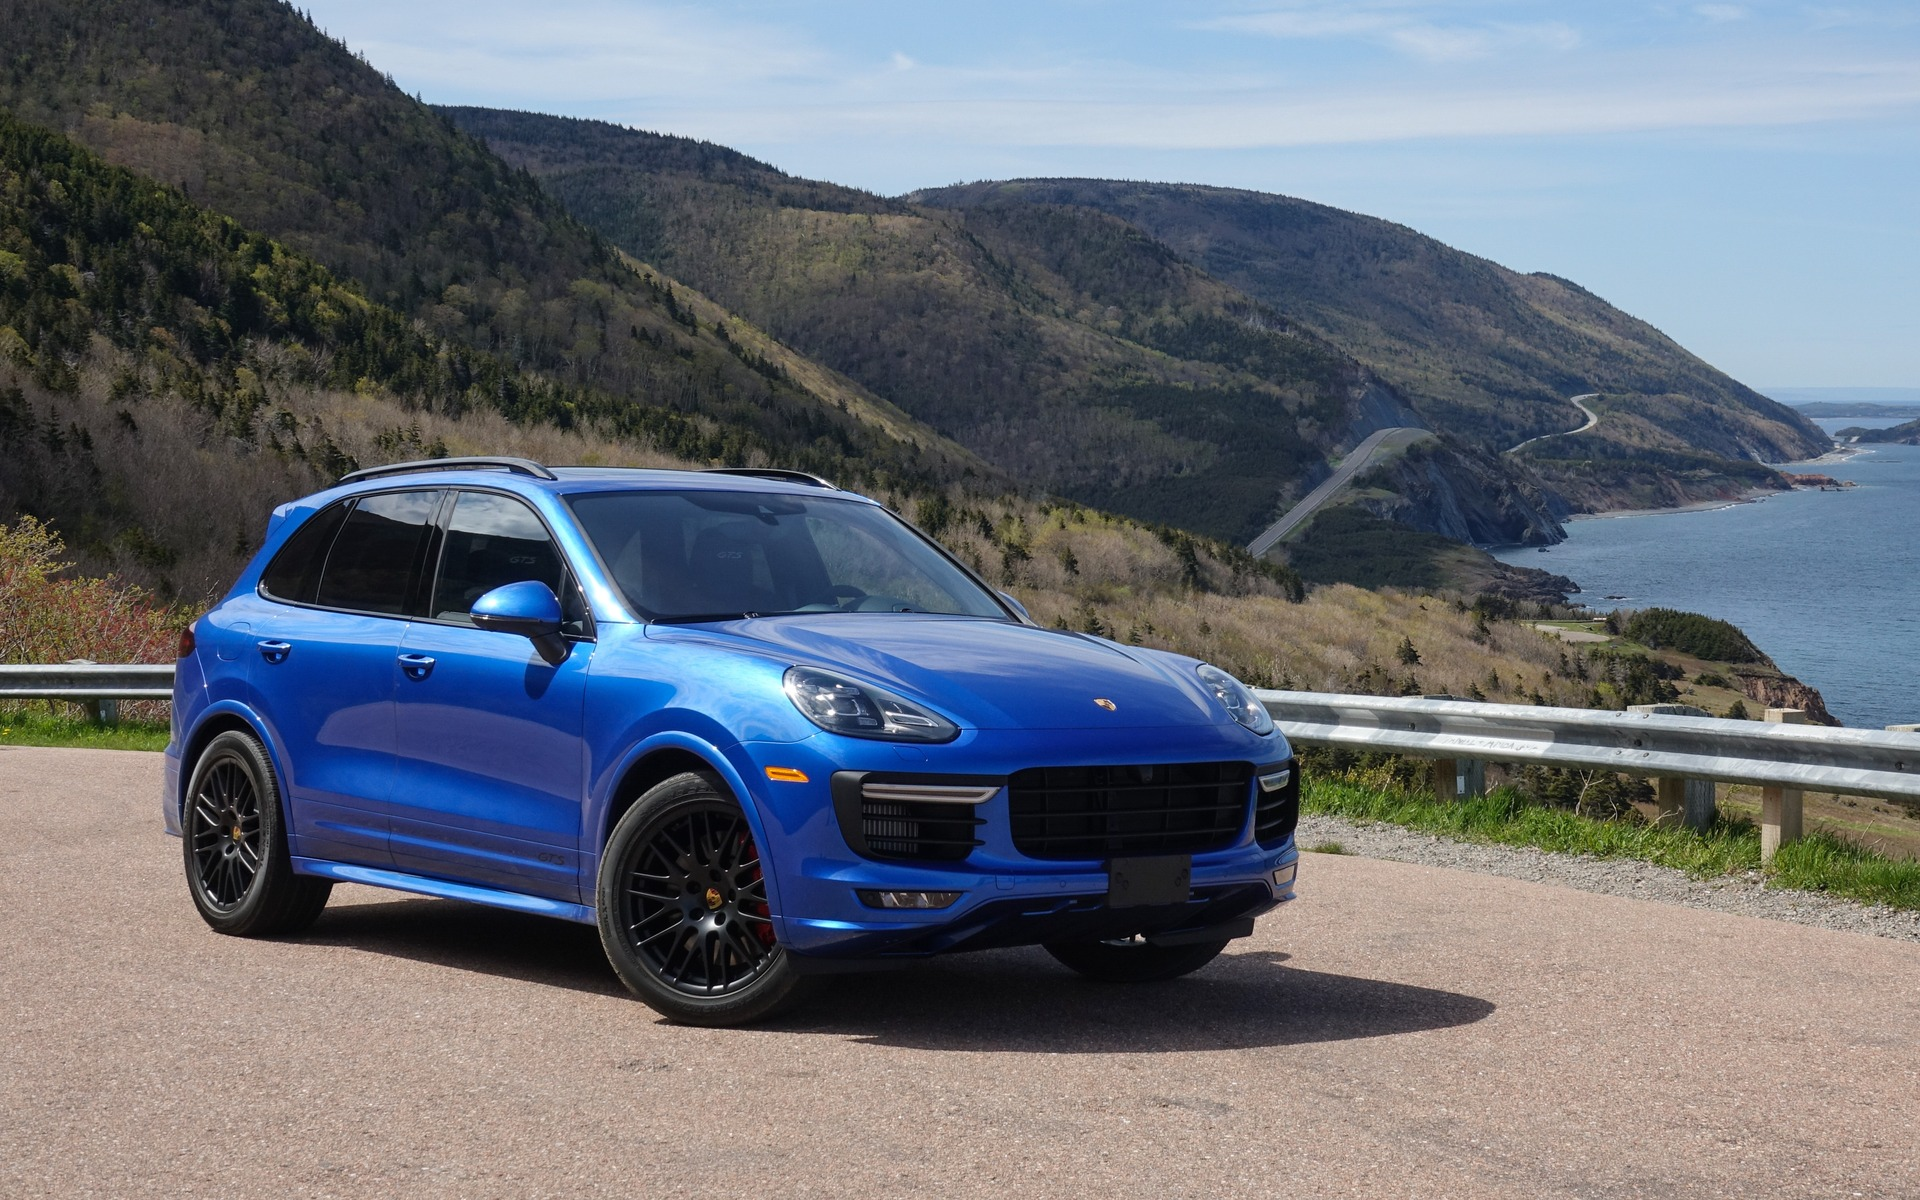 Porsche Cayenne Gts And Macan Turbo On The Cabot Trail The Car Guide